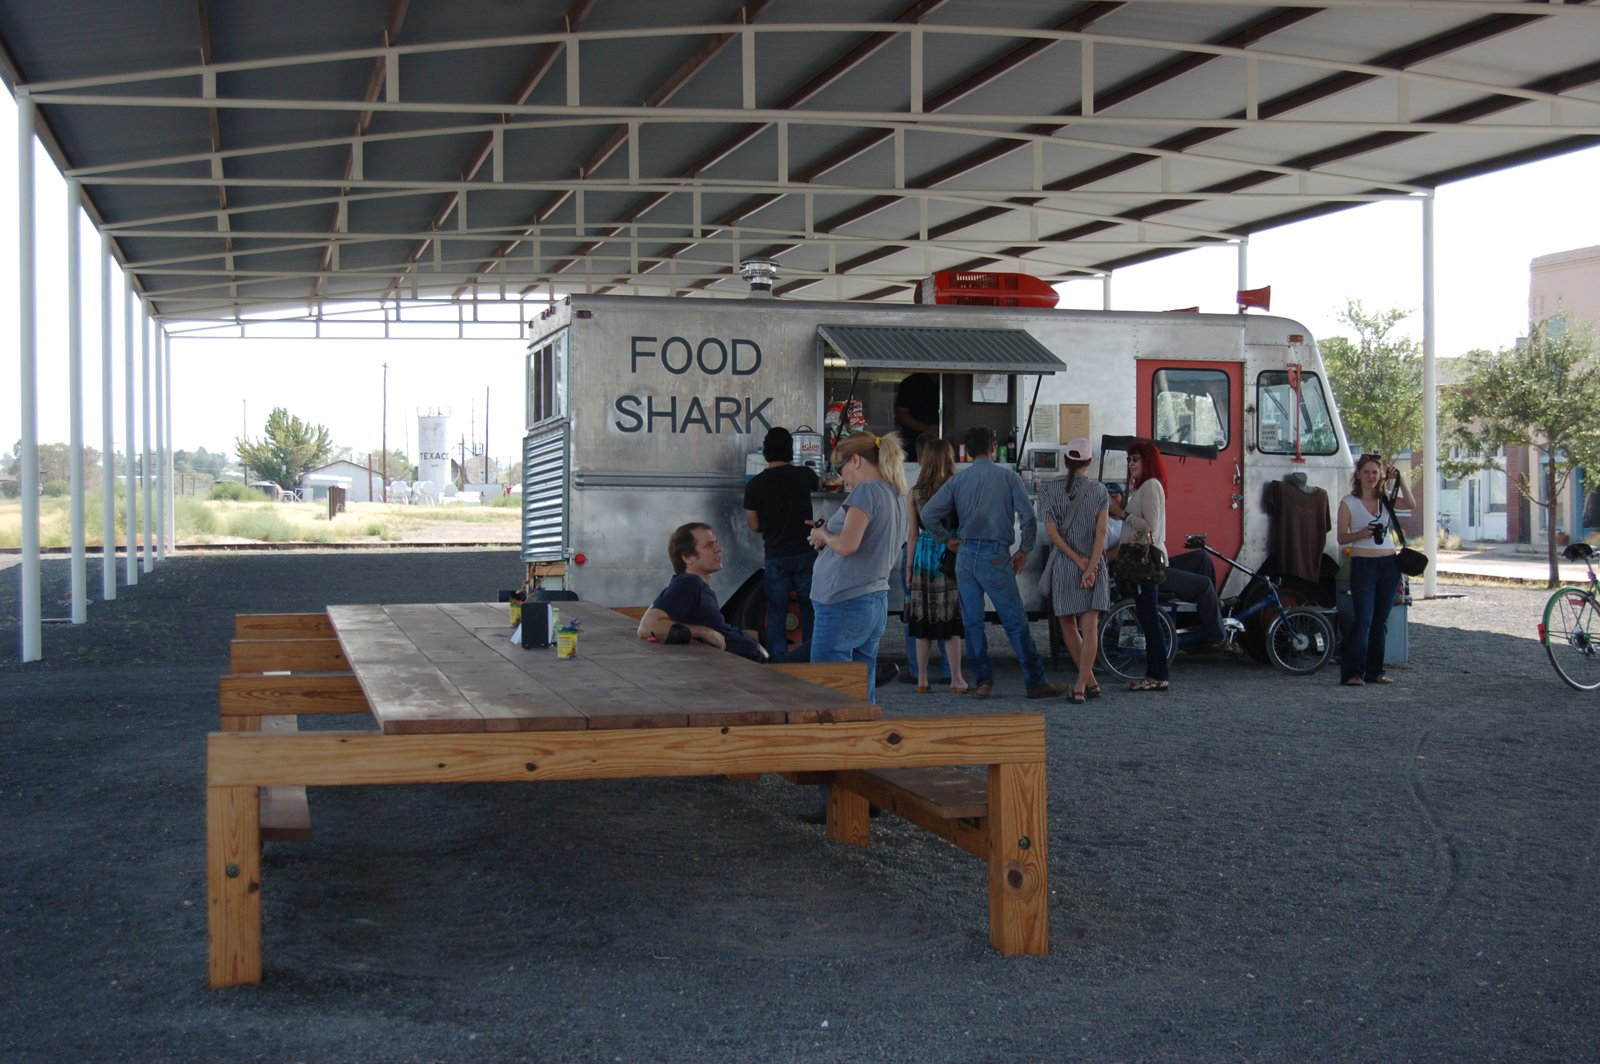 After the tour, we headed back into the center of town to grab lunch. Food Shark, the local mobile eatery, did not disappoint. When we arrived promptly at noon, there was already a hungry throng queued up and lounging on Donald Judd–designed furnishings.  Photo 6 of 12 in Journey by Design: Marfa, Texas from Two Days in Marfa, Texas